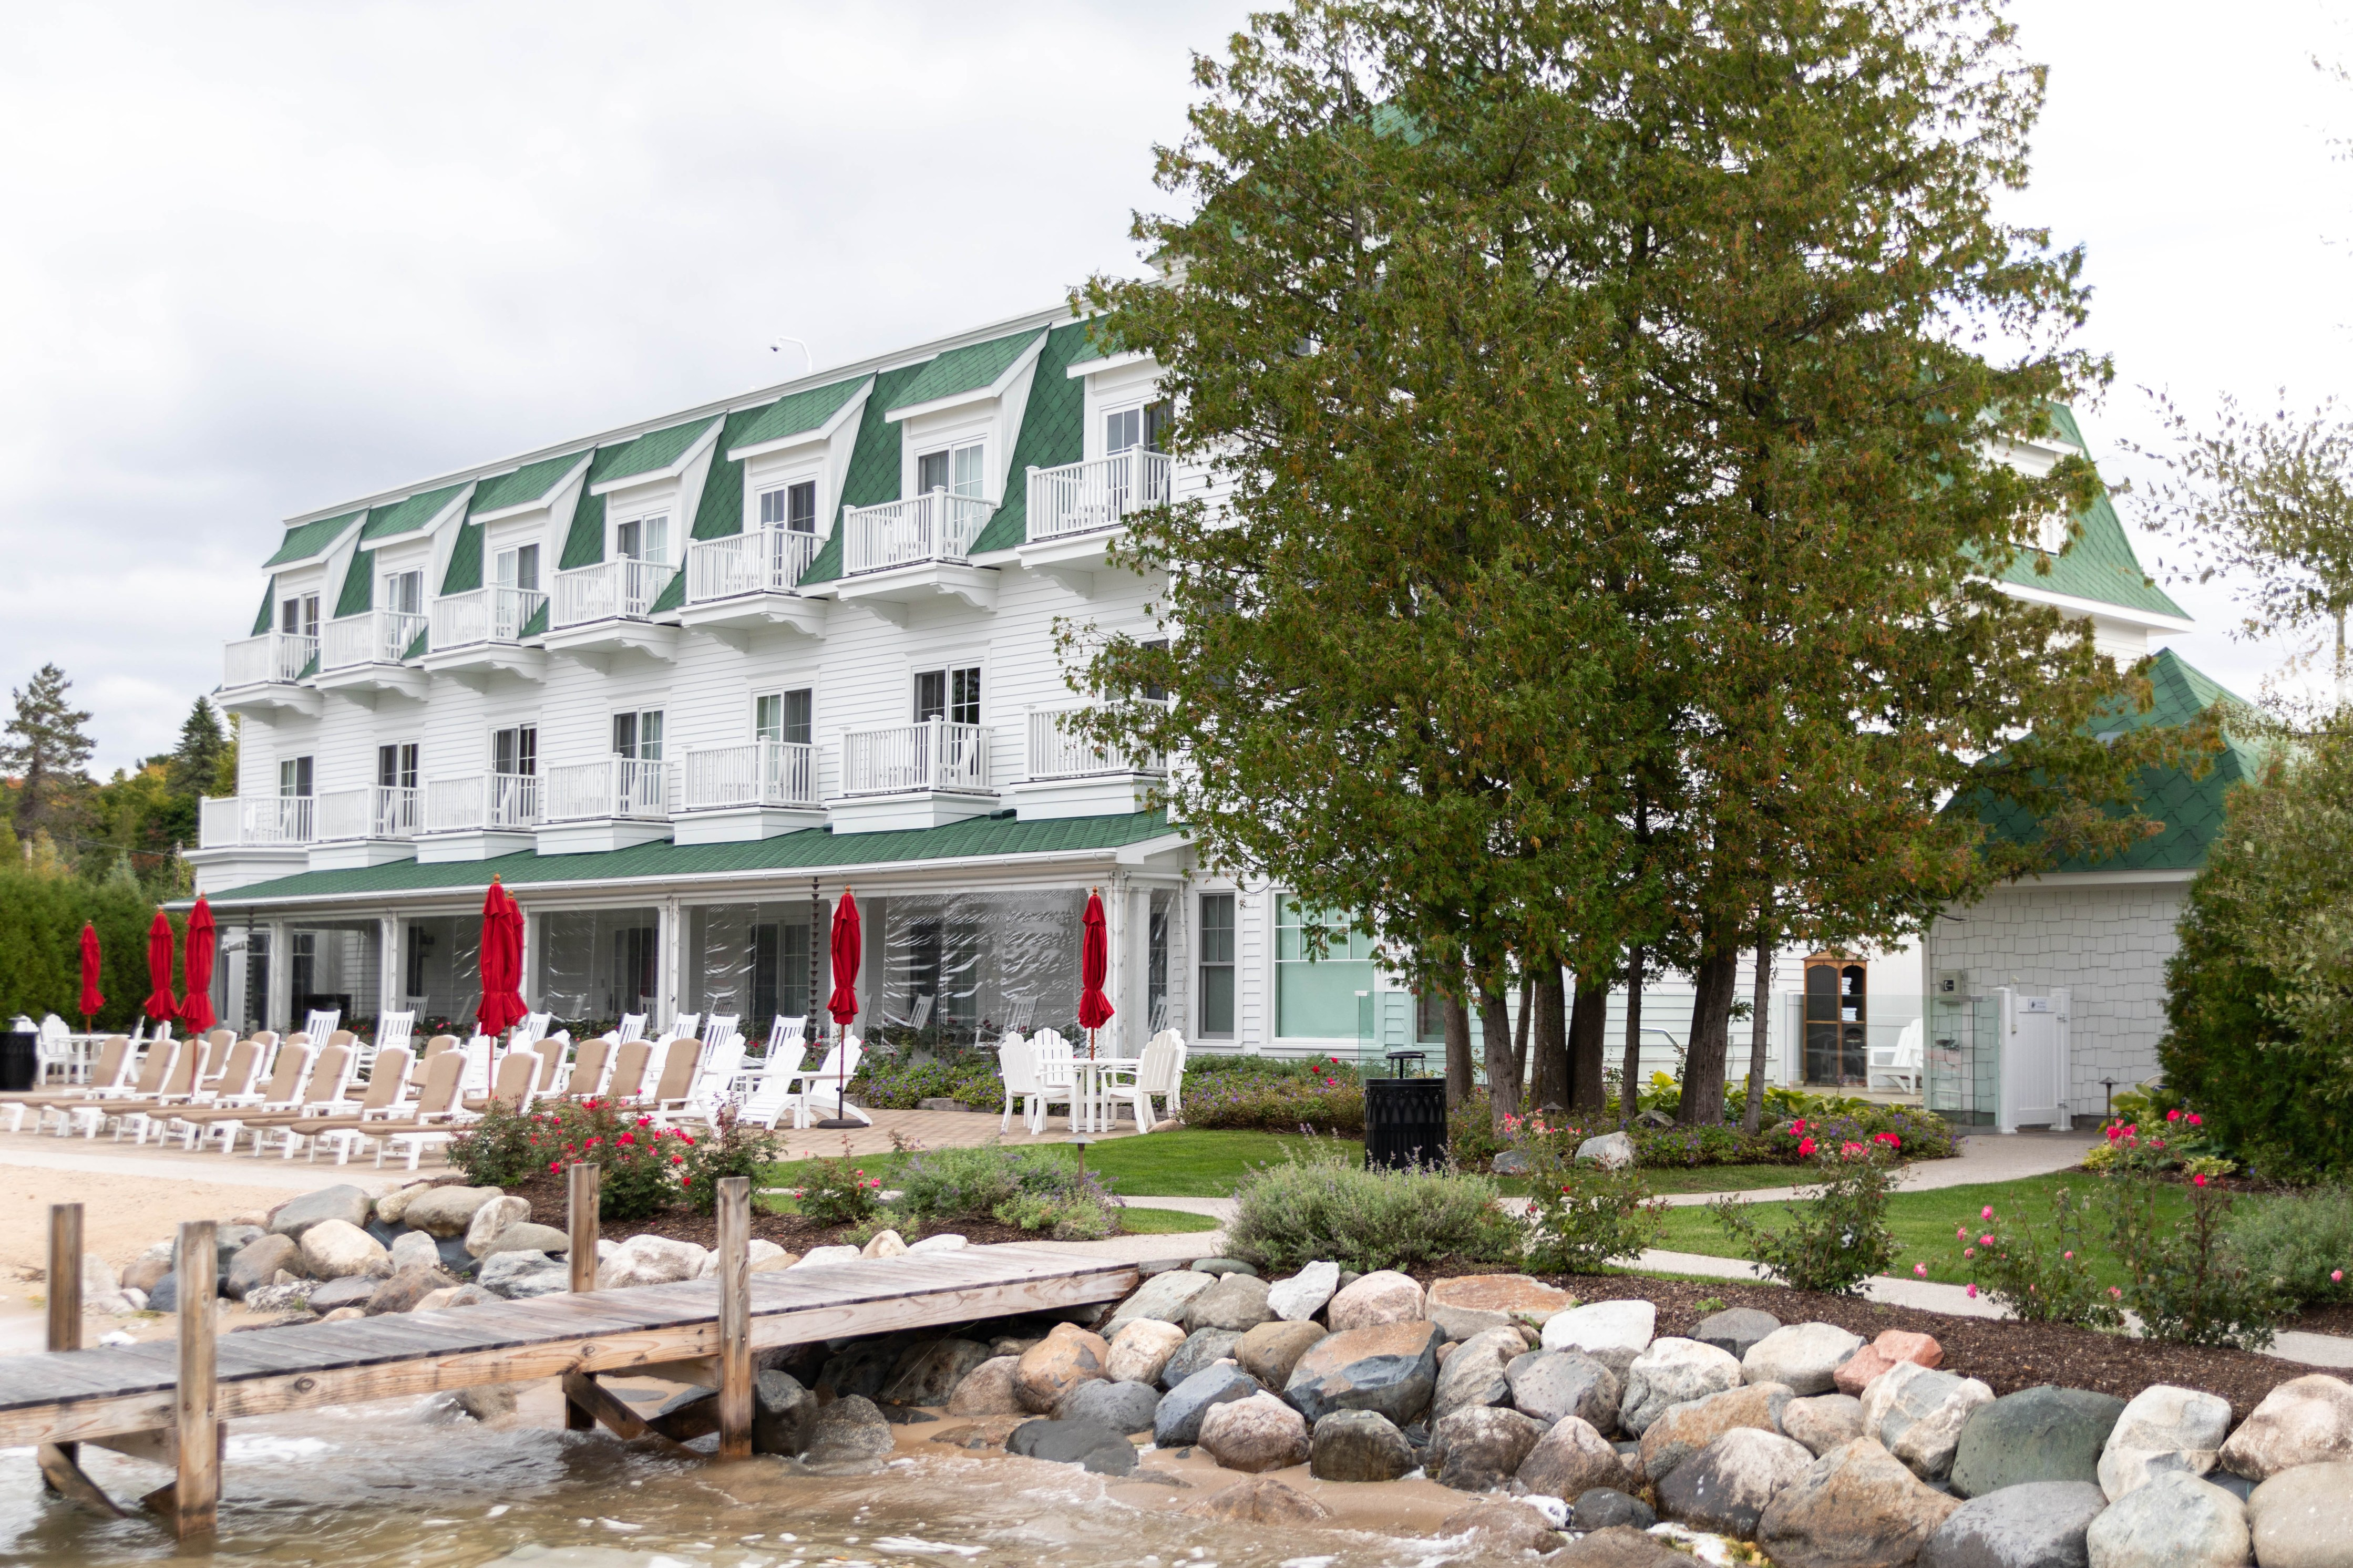 Luxury Hotels of the World: Hotel Walloon Walloon Lake, Michigan